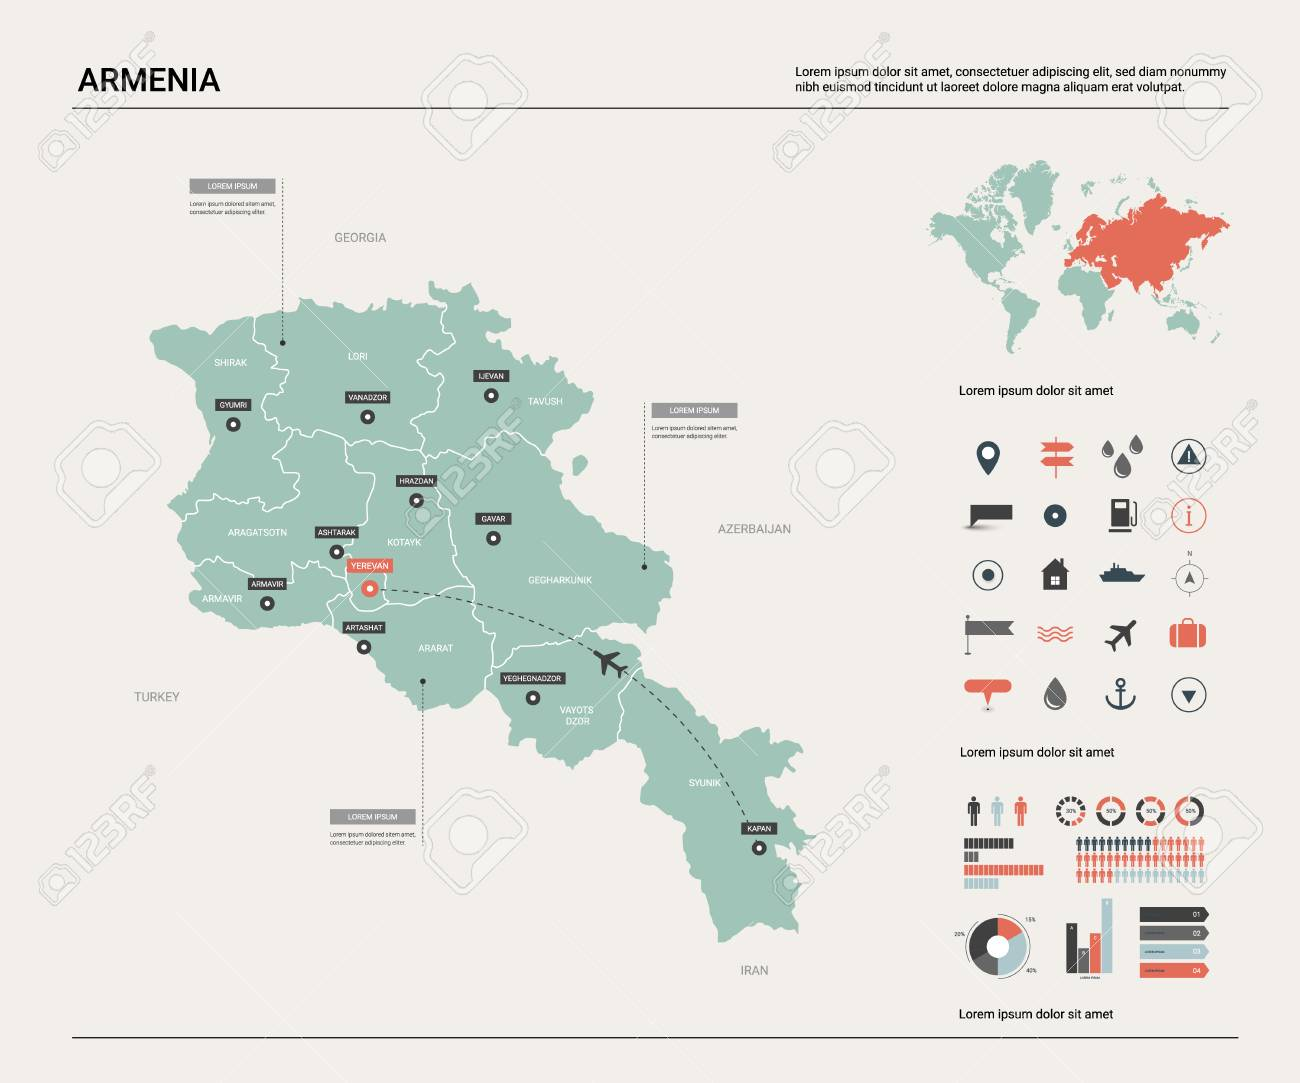 Vector map of Armenia. High detailed country map with division,.. on tashkent world map, monaco world map, tallinn world map, almaty world map, zagreb world map, liechtenstien world map, andorra world map, bishkek world map, karachi world map, astana world map, vatican city world map, kiev world map, sierra leone world map, vilnius world map, podgorica world map, dushanbe world map, kazan world map, riga world map, odessa world map, malta world map,